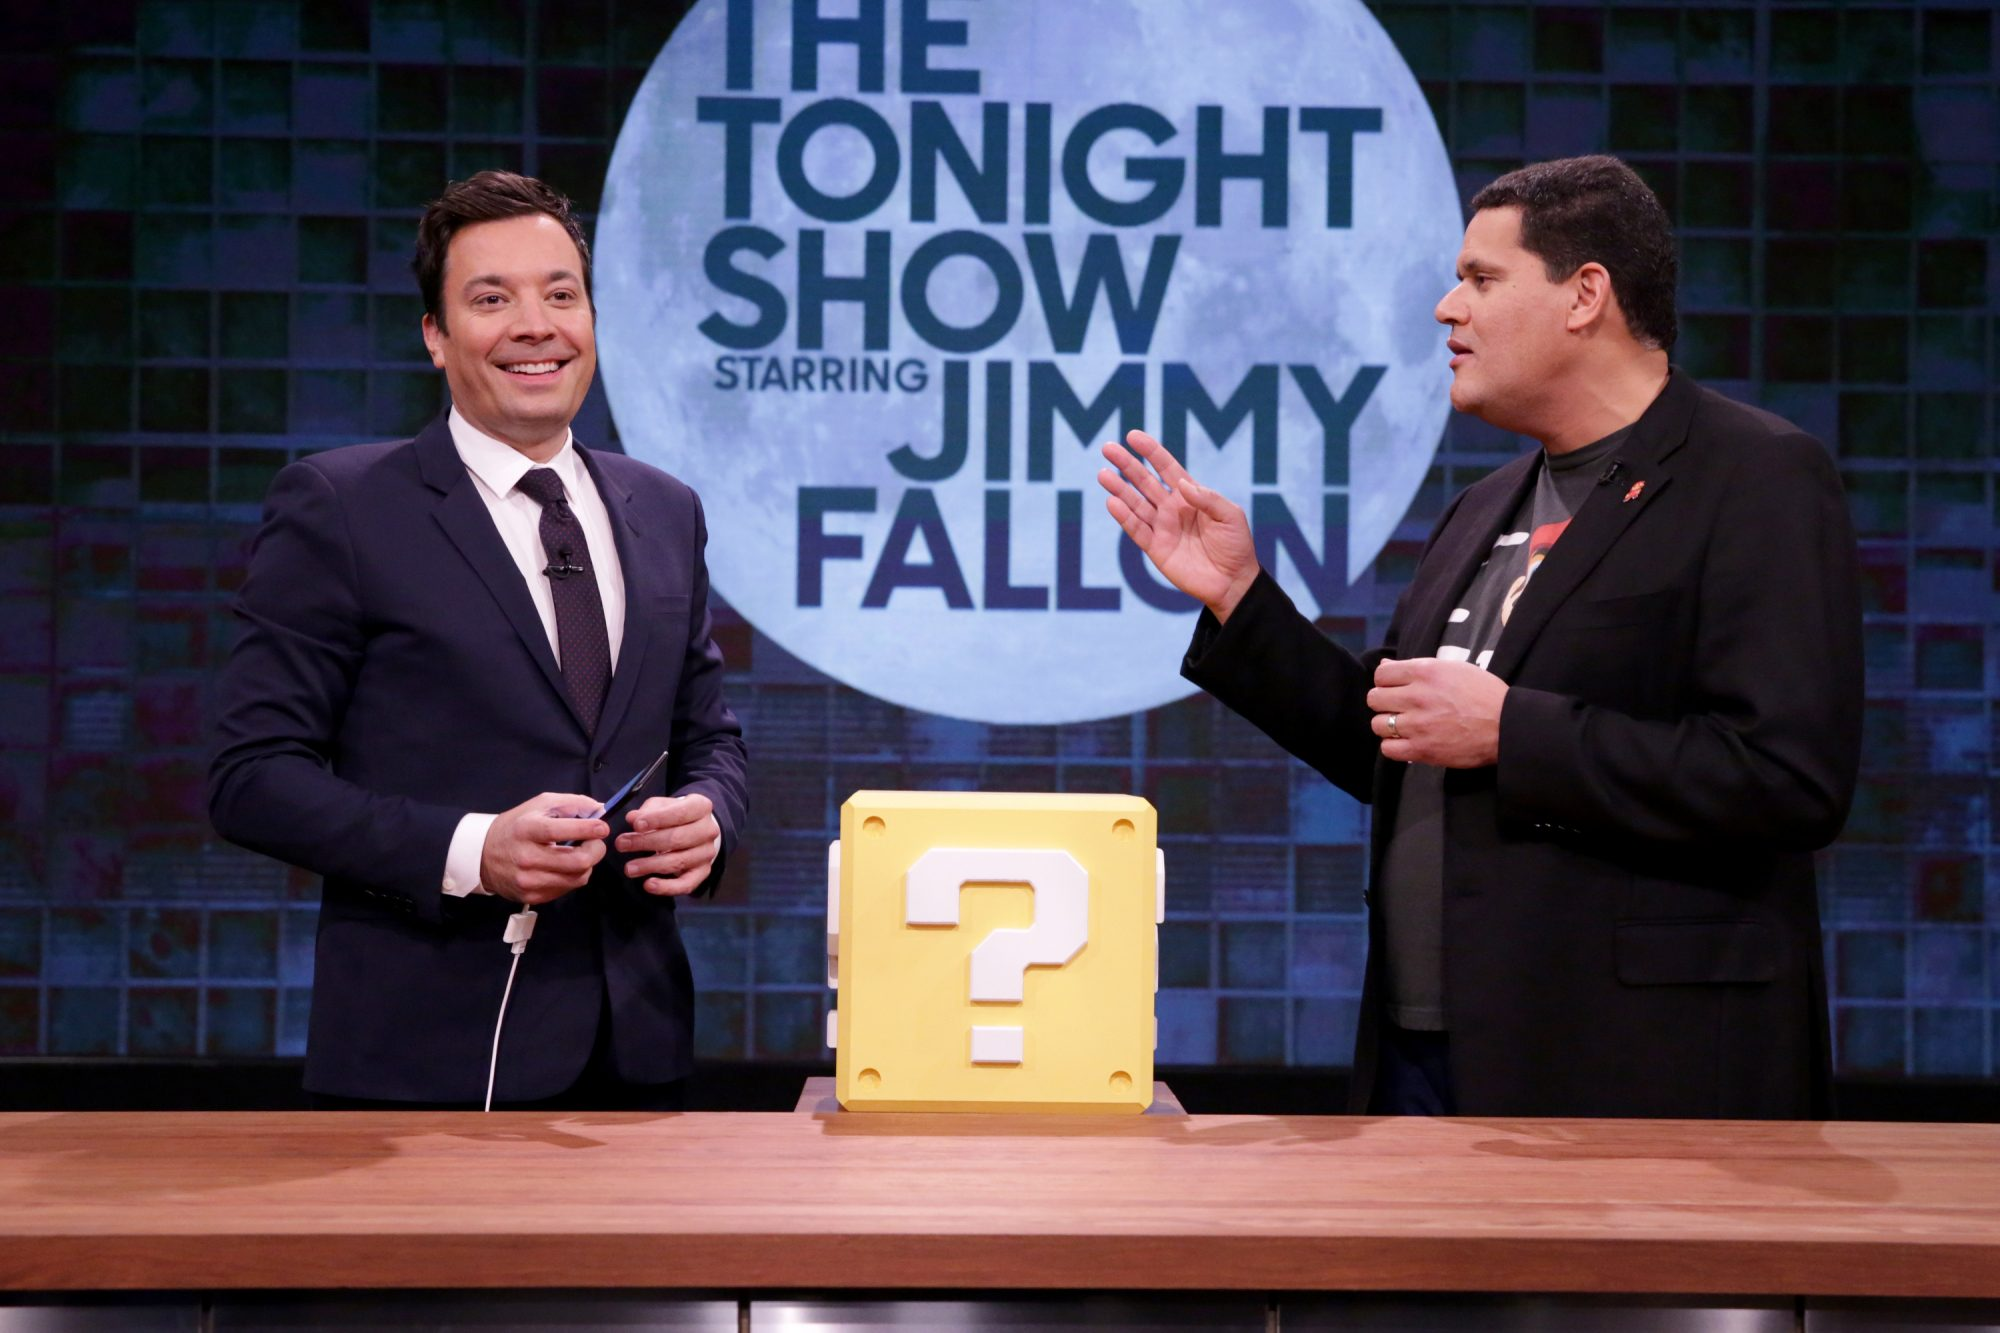 Nintendo on Fallon